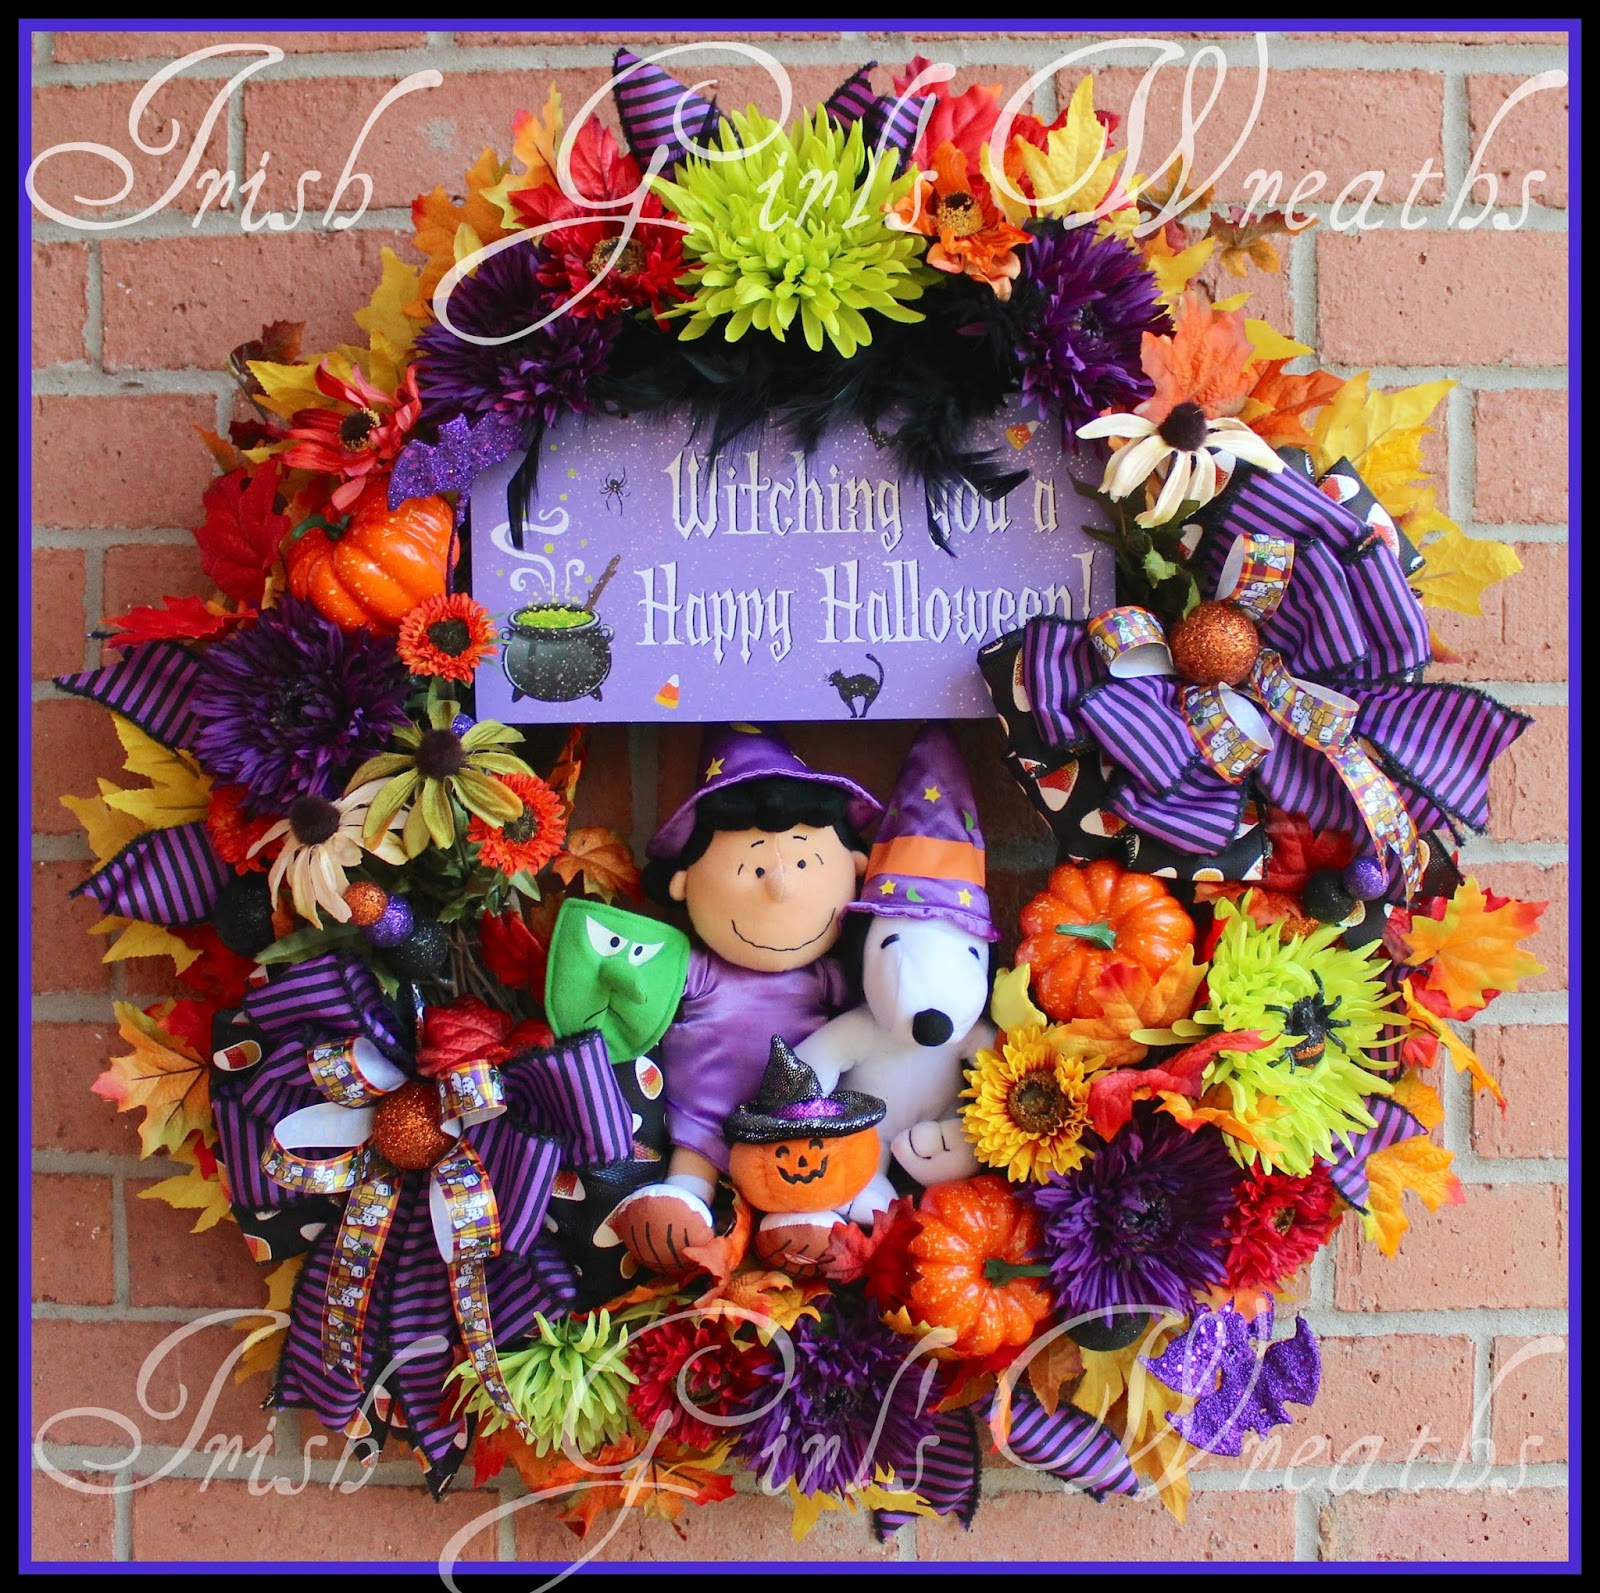 Lucy and Snoopy Witching You a Happy Halloween Wreath